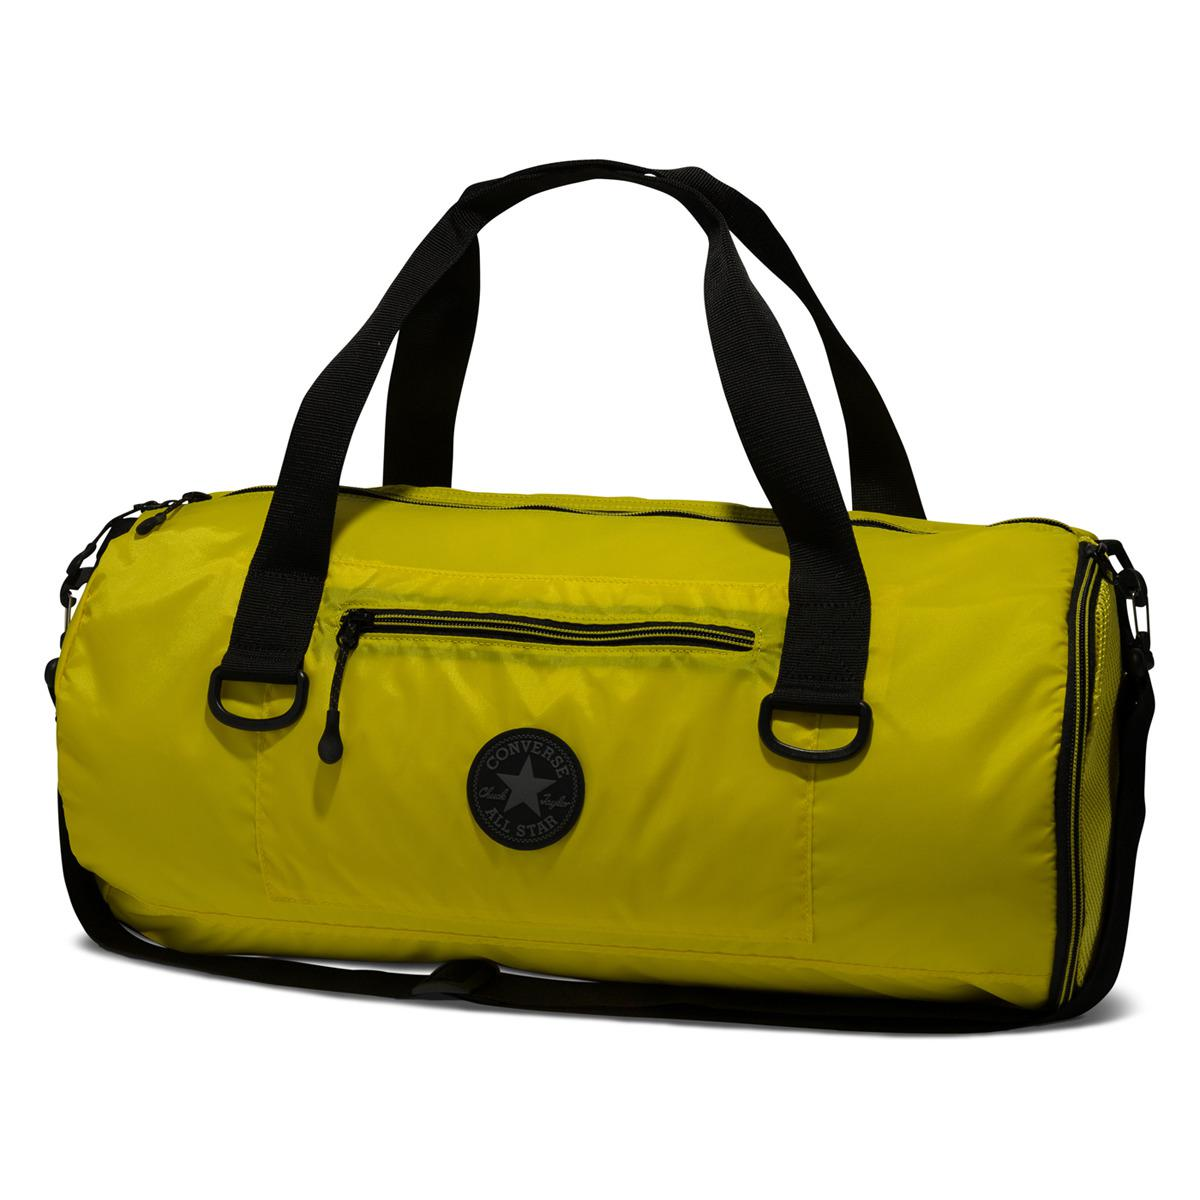 4554354b9fa99a Gallery. Previously sold at: El Corte Ingles · Women's Duffel Bags ...